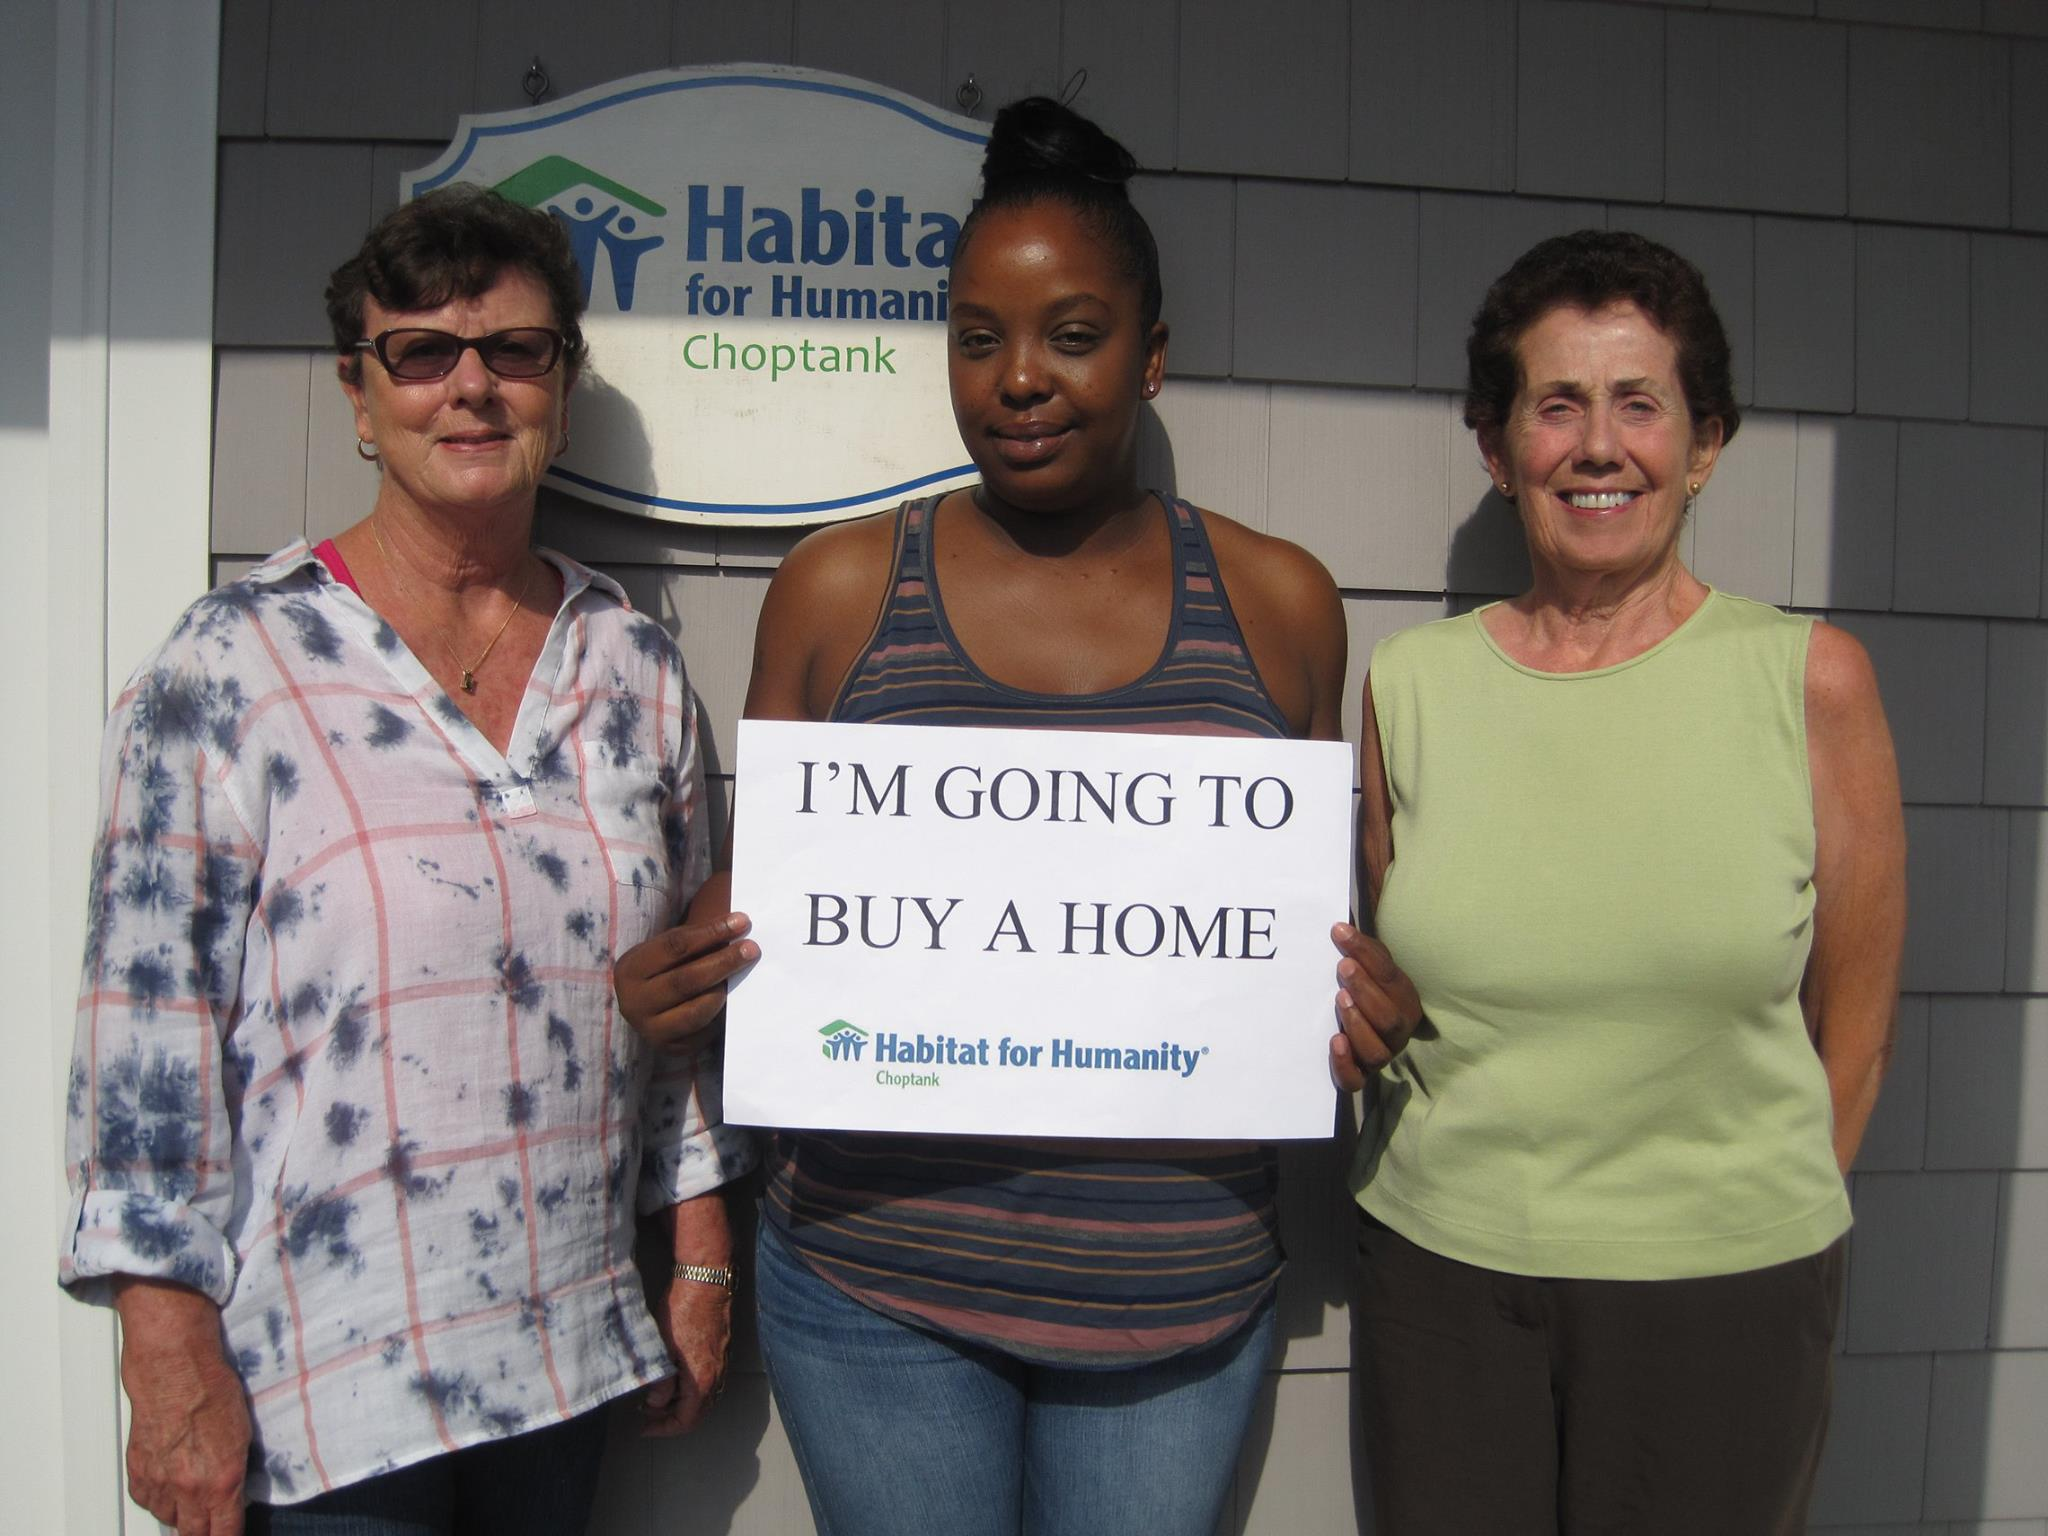 Londonderry employees become Habitat homebuyers